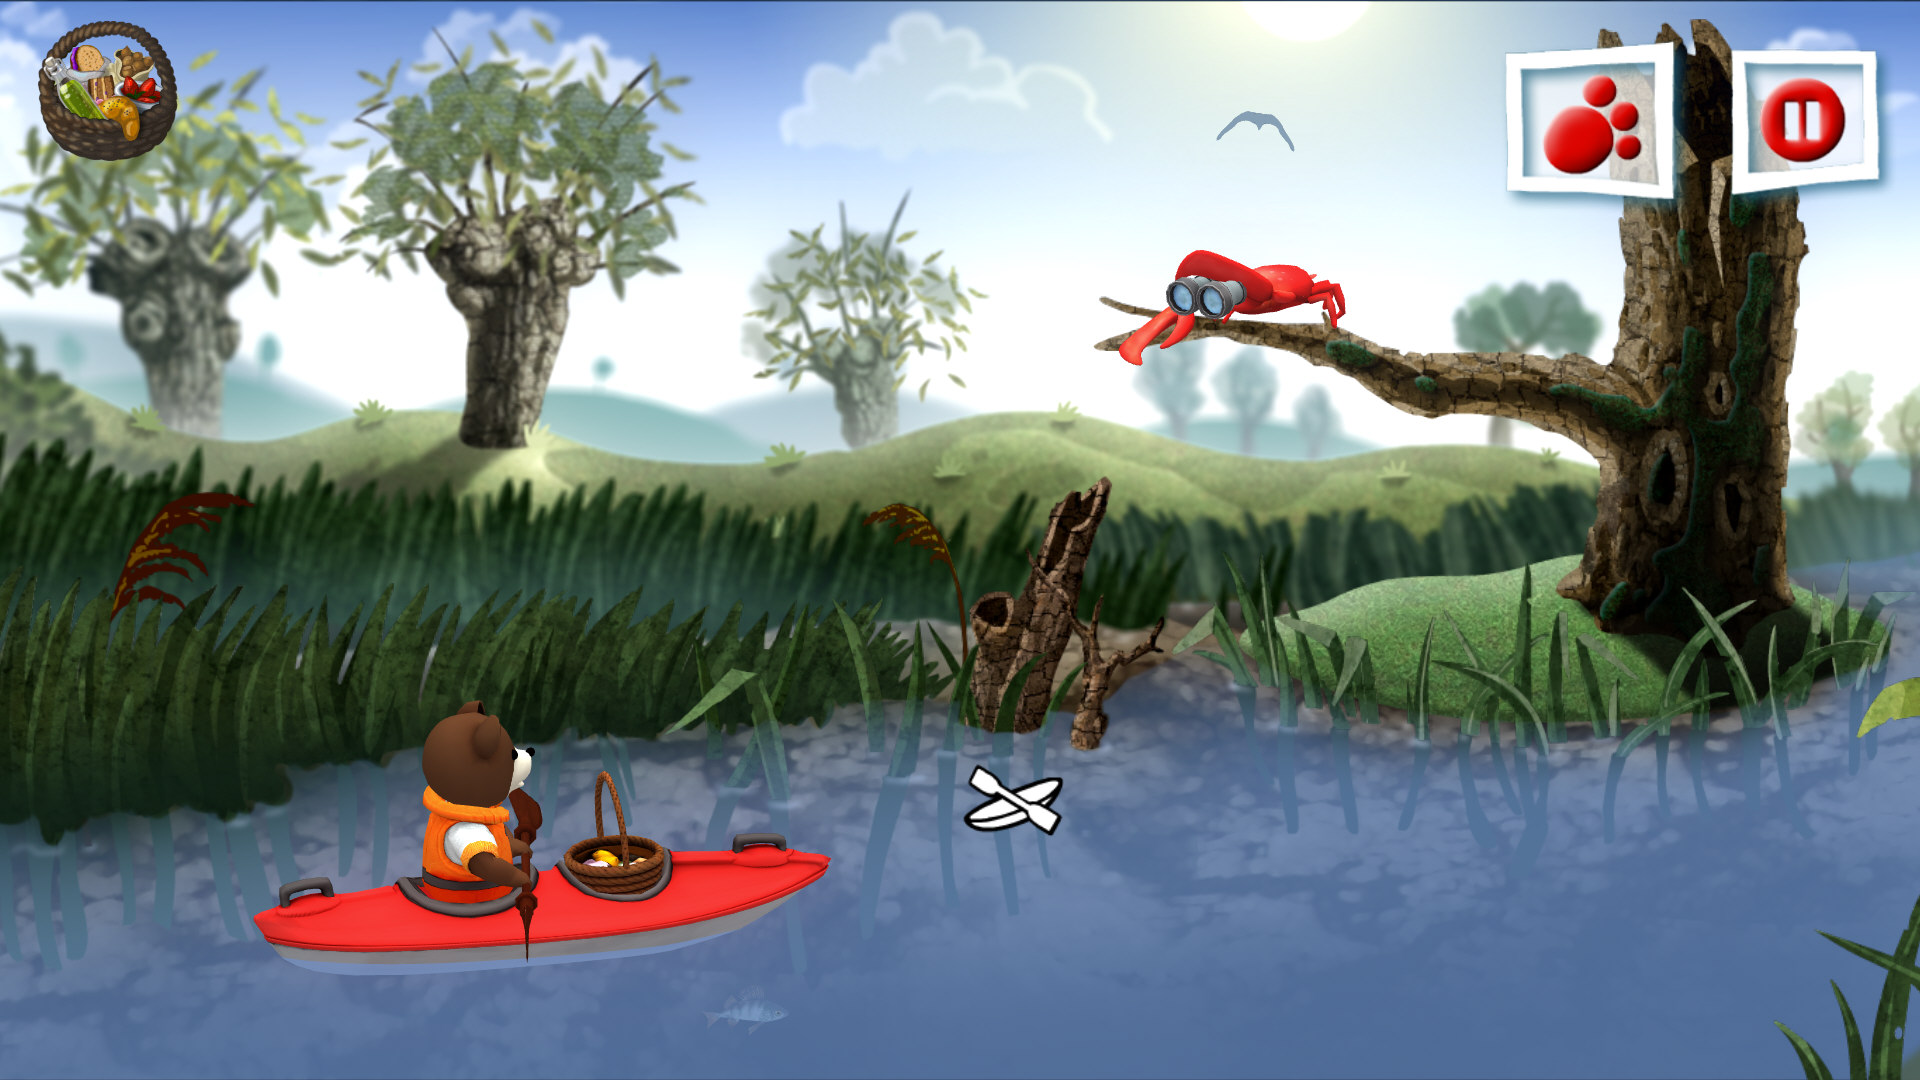 Teddy Floppy Ear - Kayaking (Steam Key, Region Free)